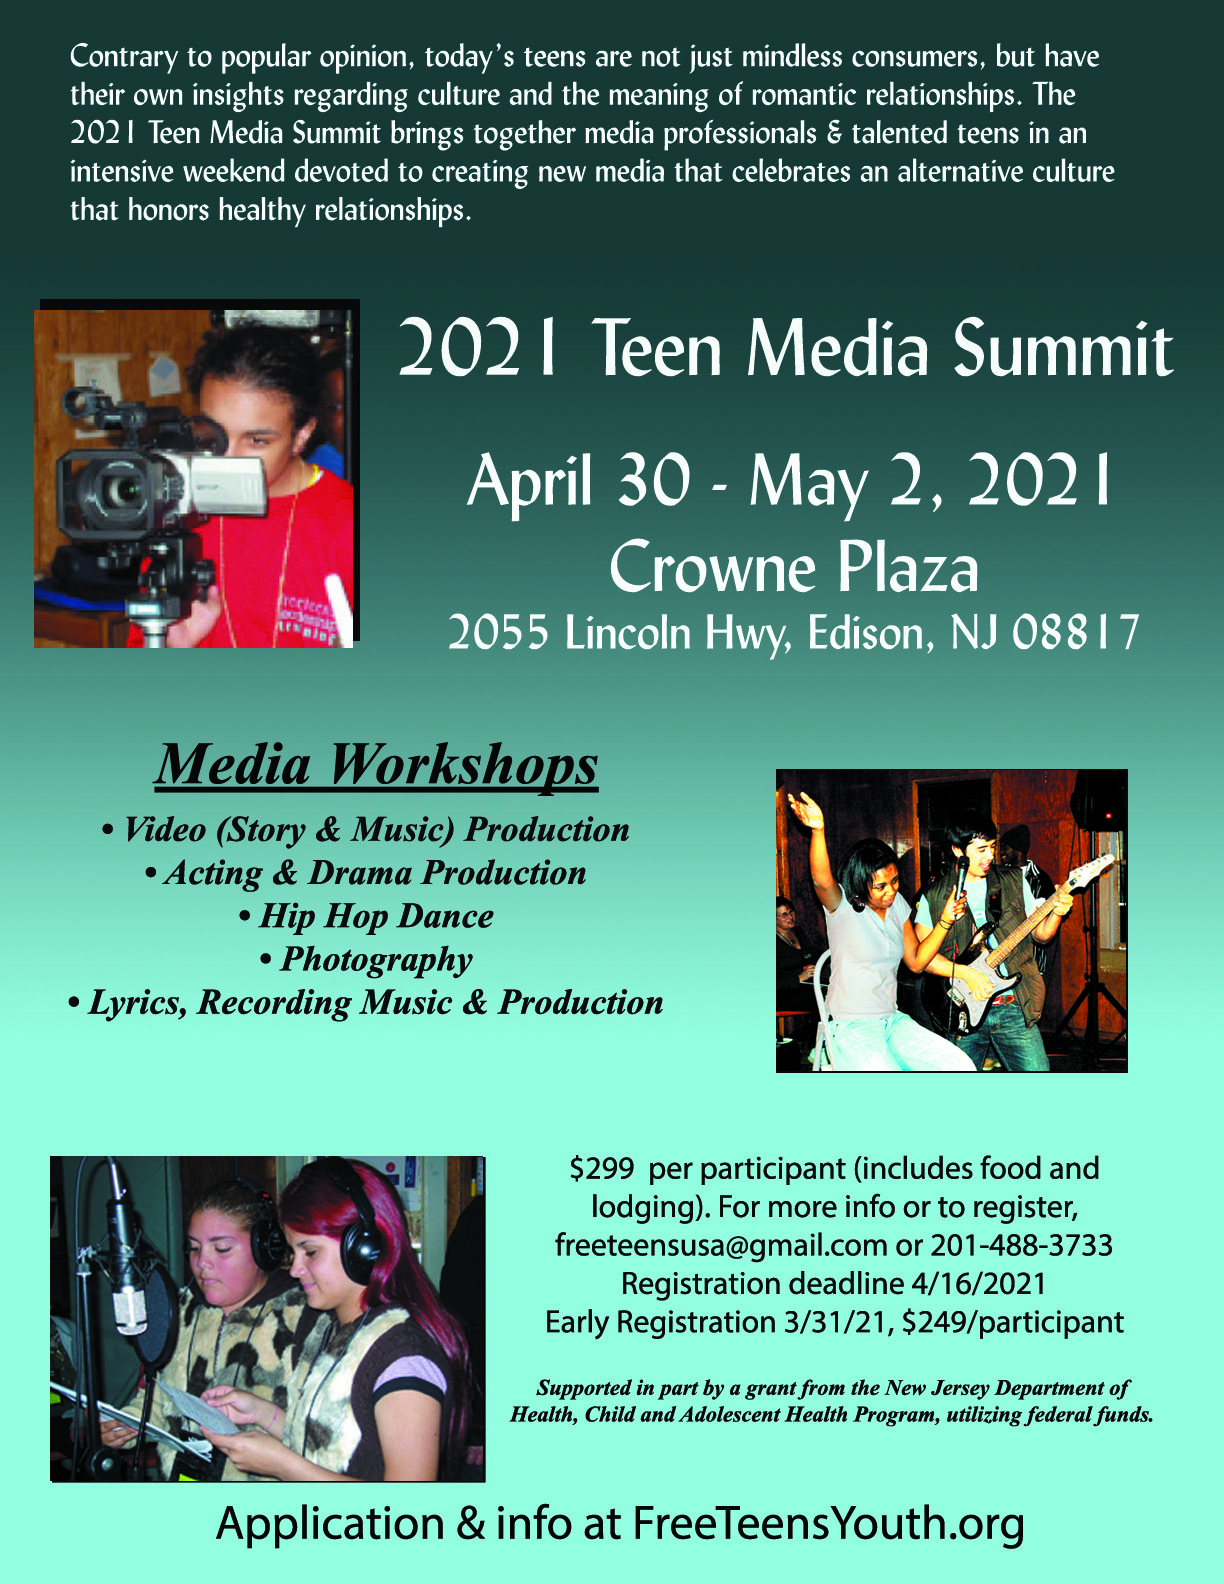 Home - Free Teens Youth - Changing Minds, Transforming Lives